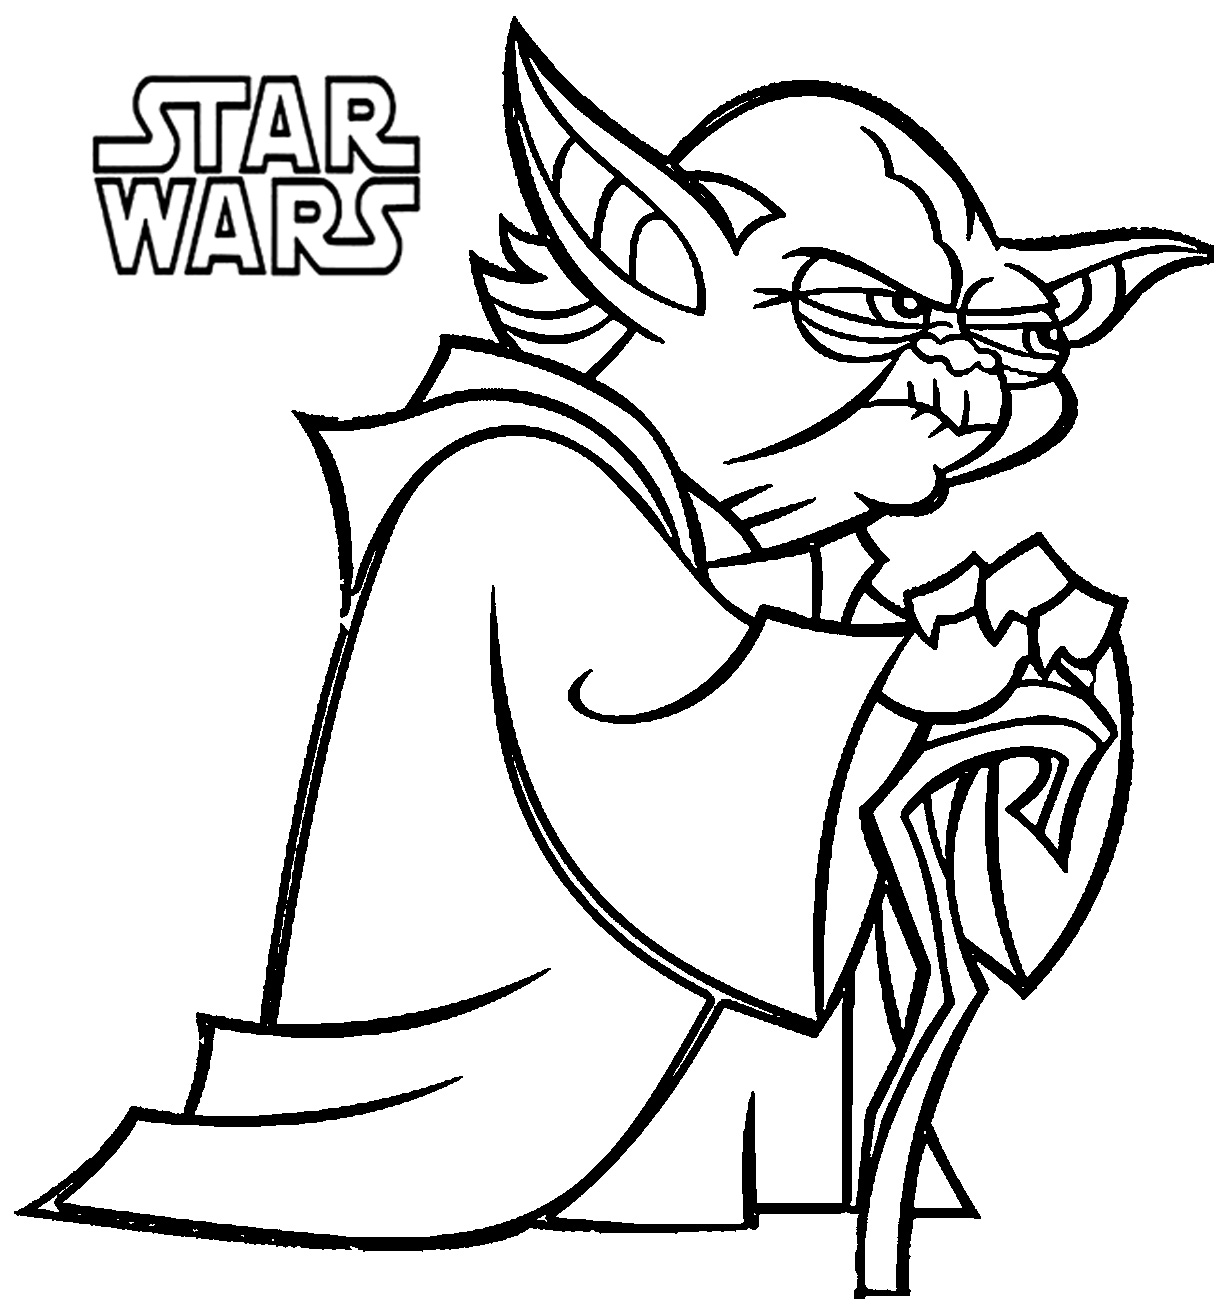 star wars free coloring pages 101 star wars coloring pages sept 2020darth vader wars coloring pages free star